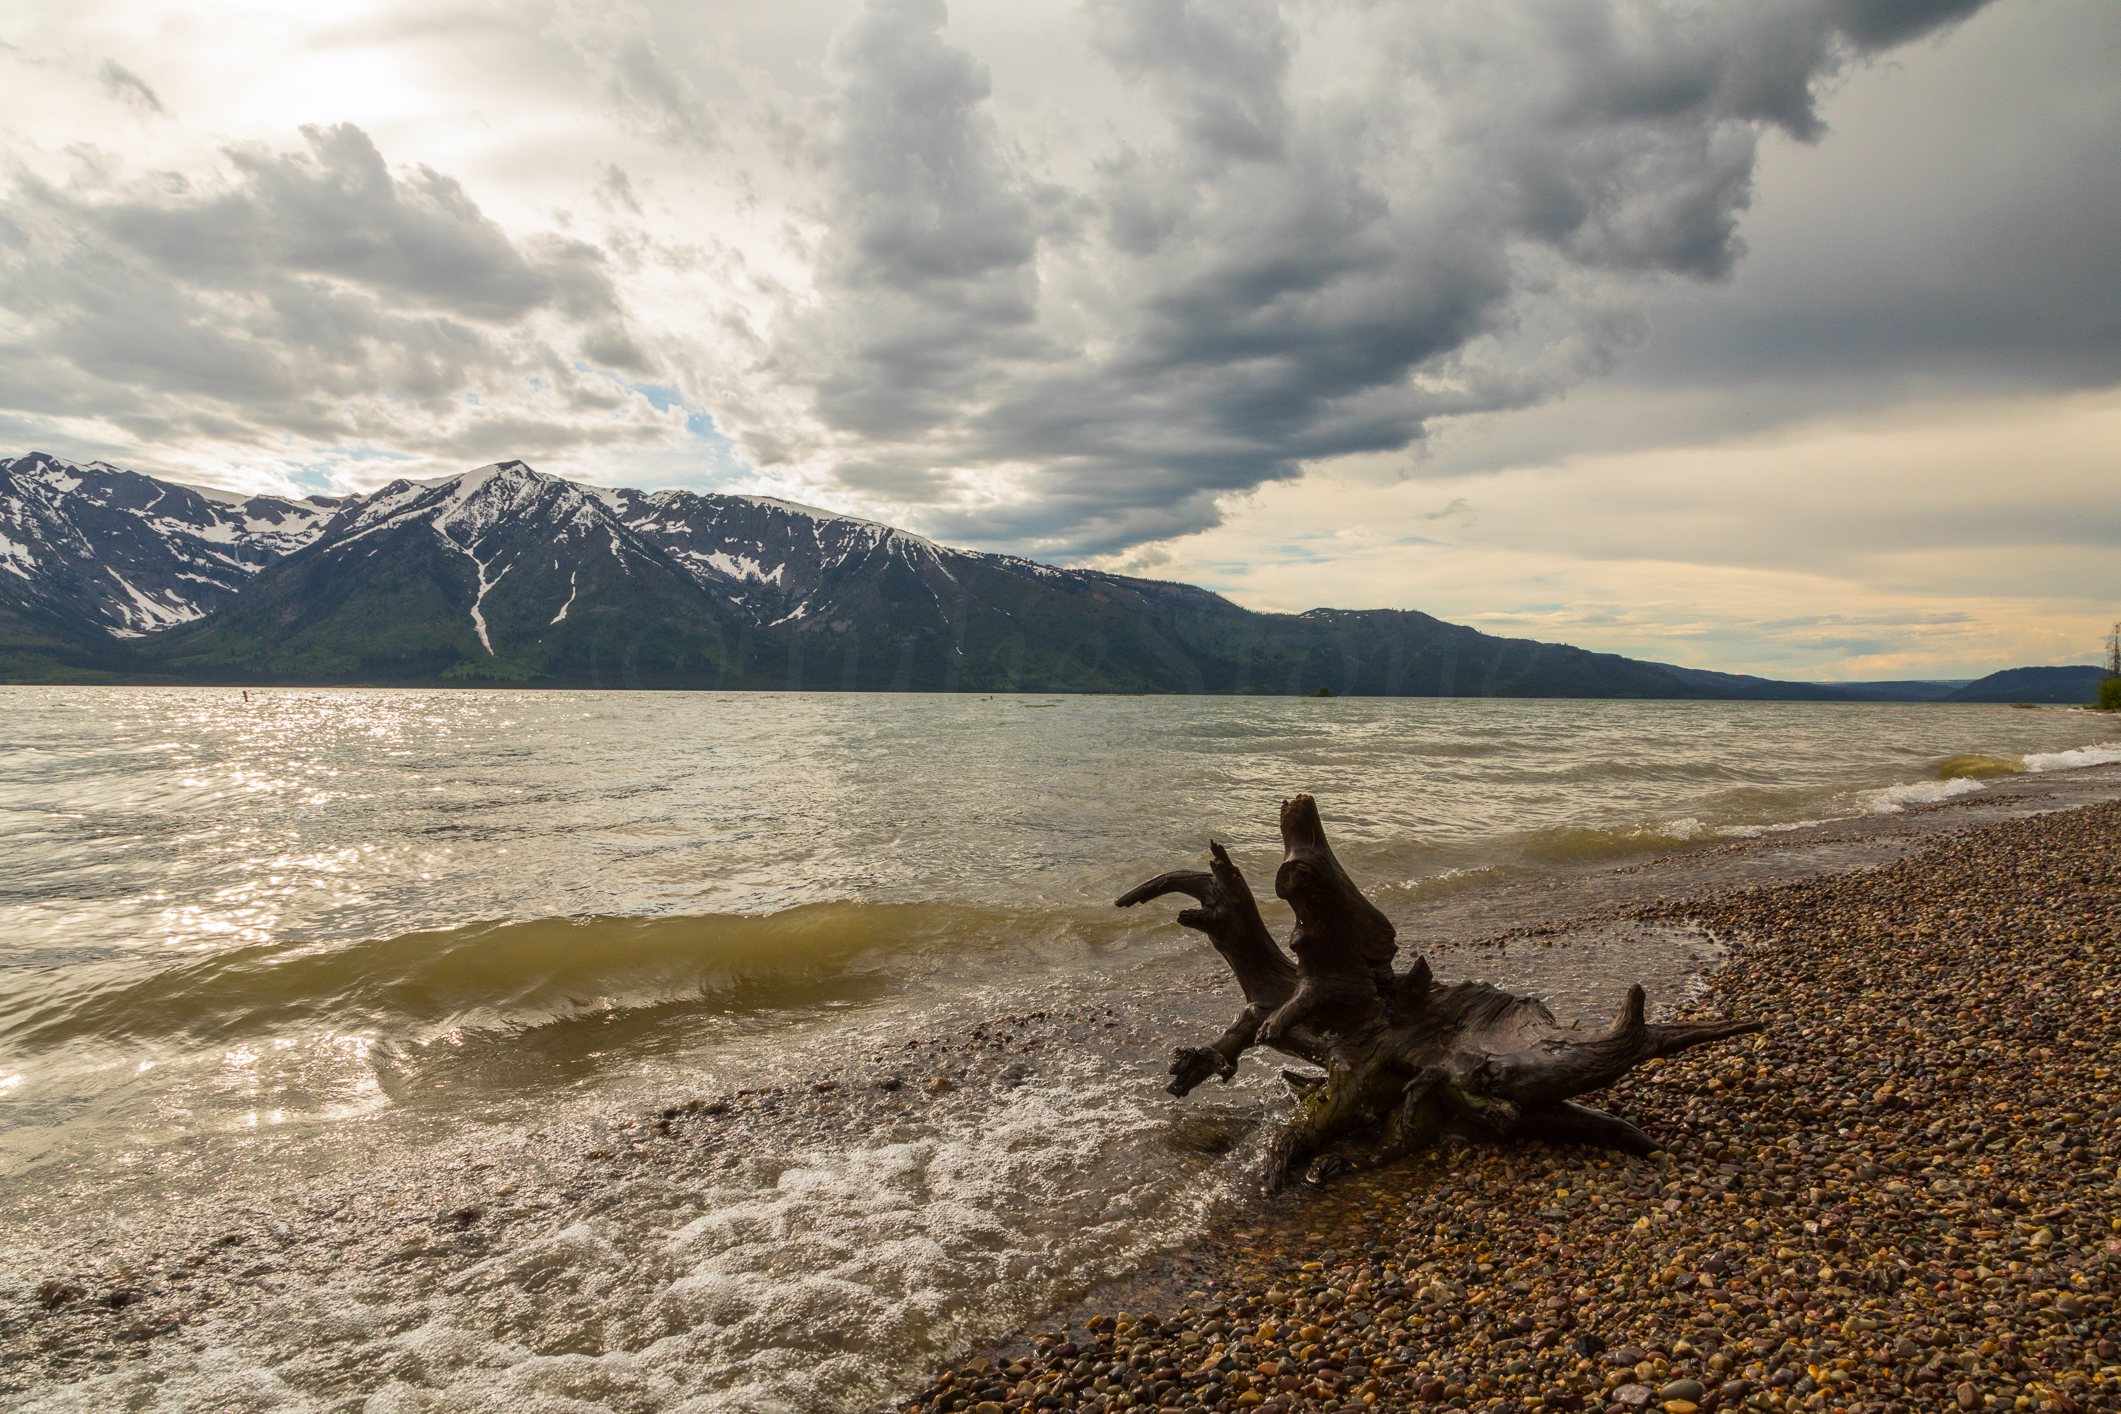 Colter Bay, Image # 3680